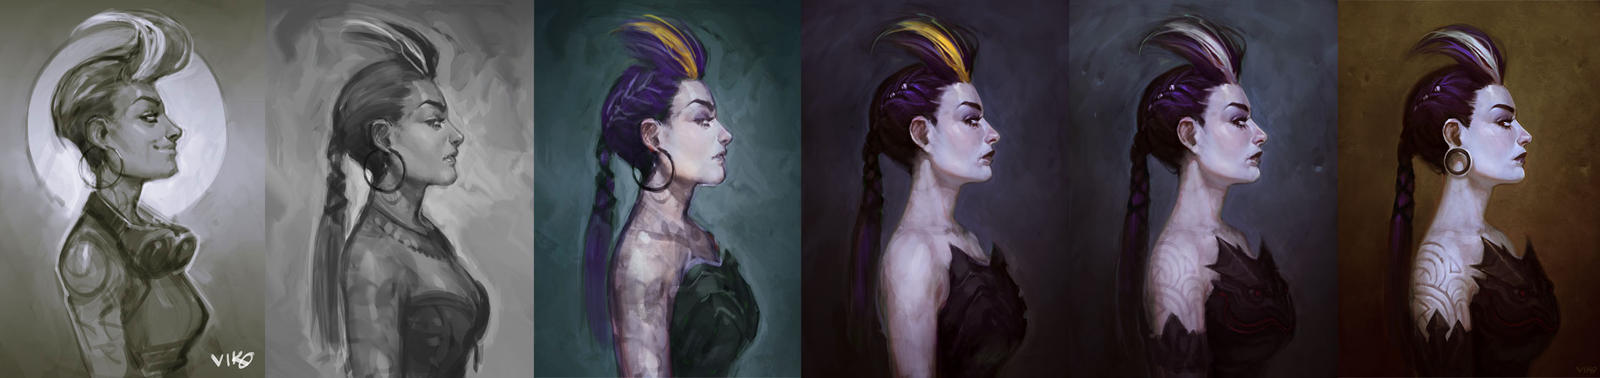 Dark Princess Process by viko-br